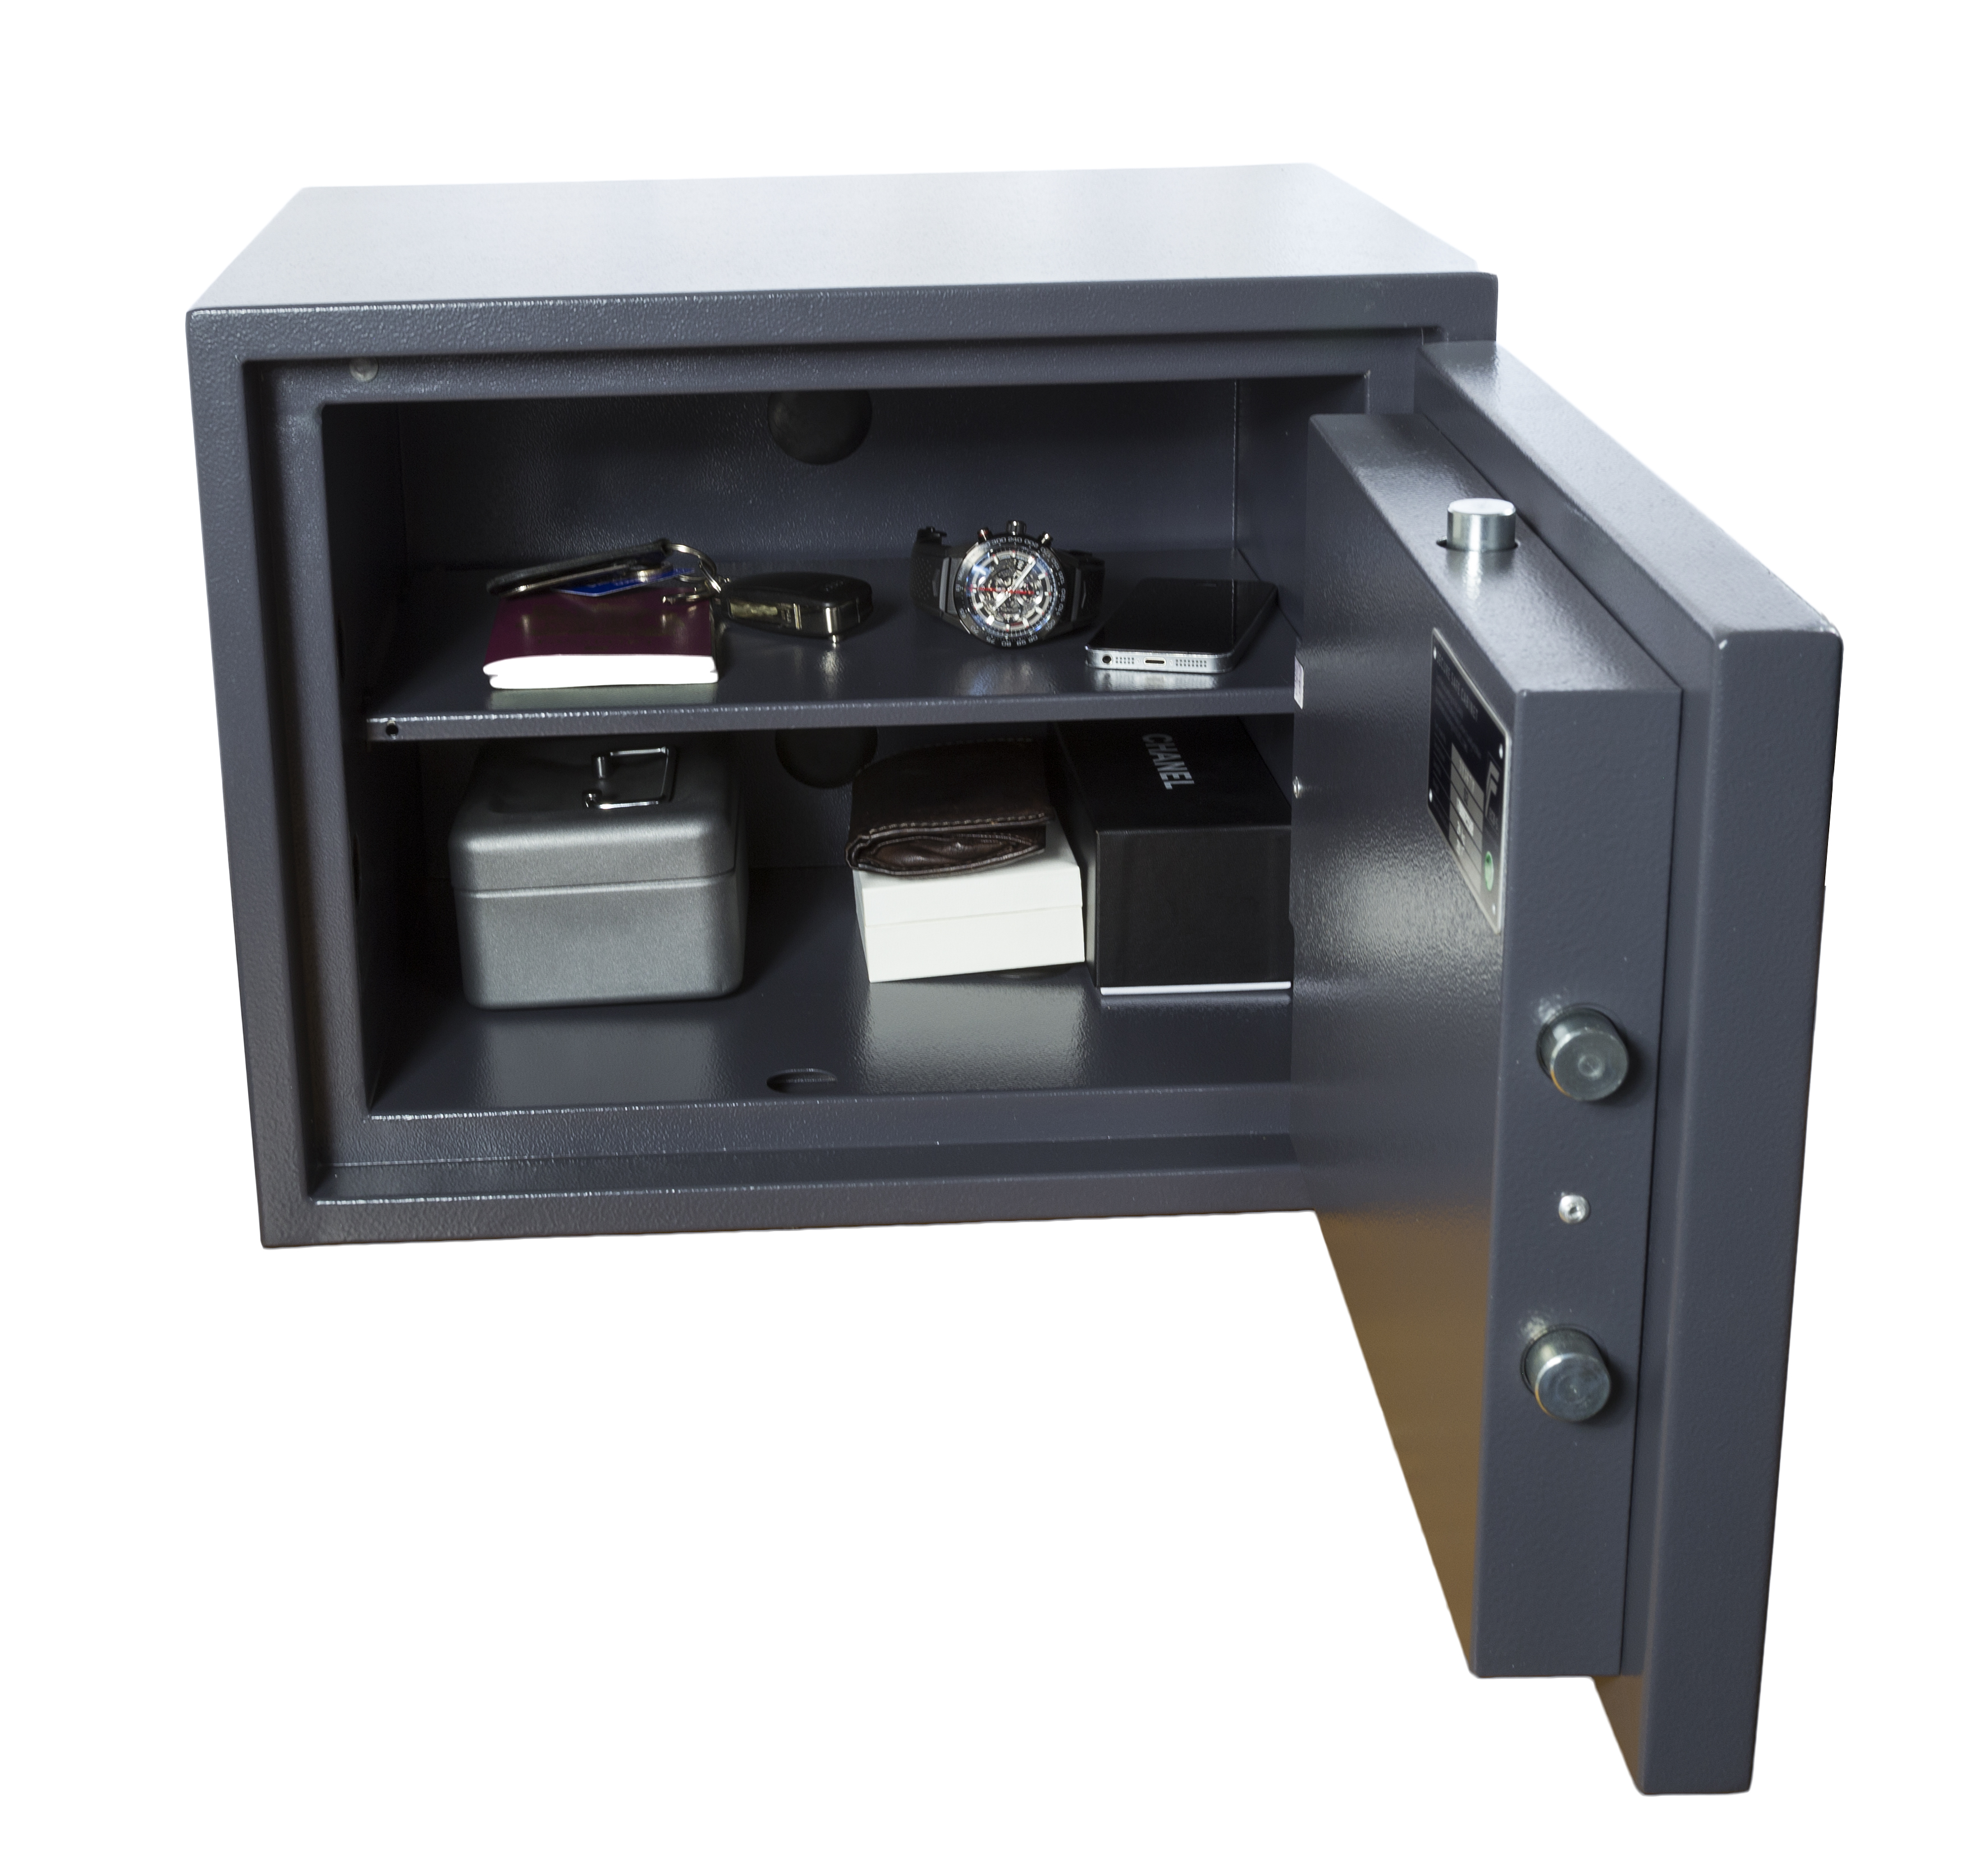 Image of open safe with valuables